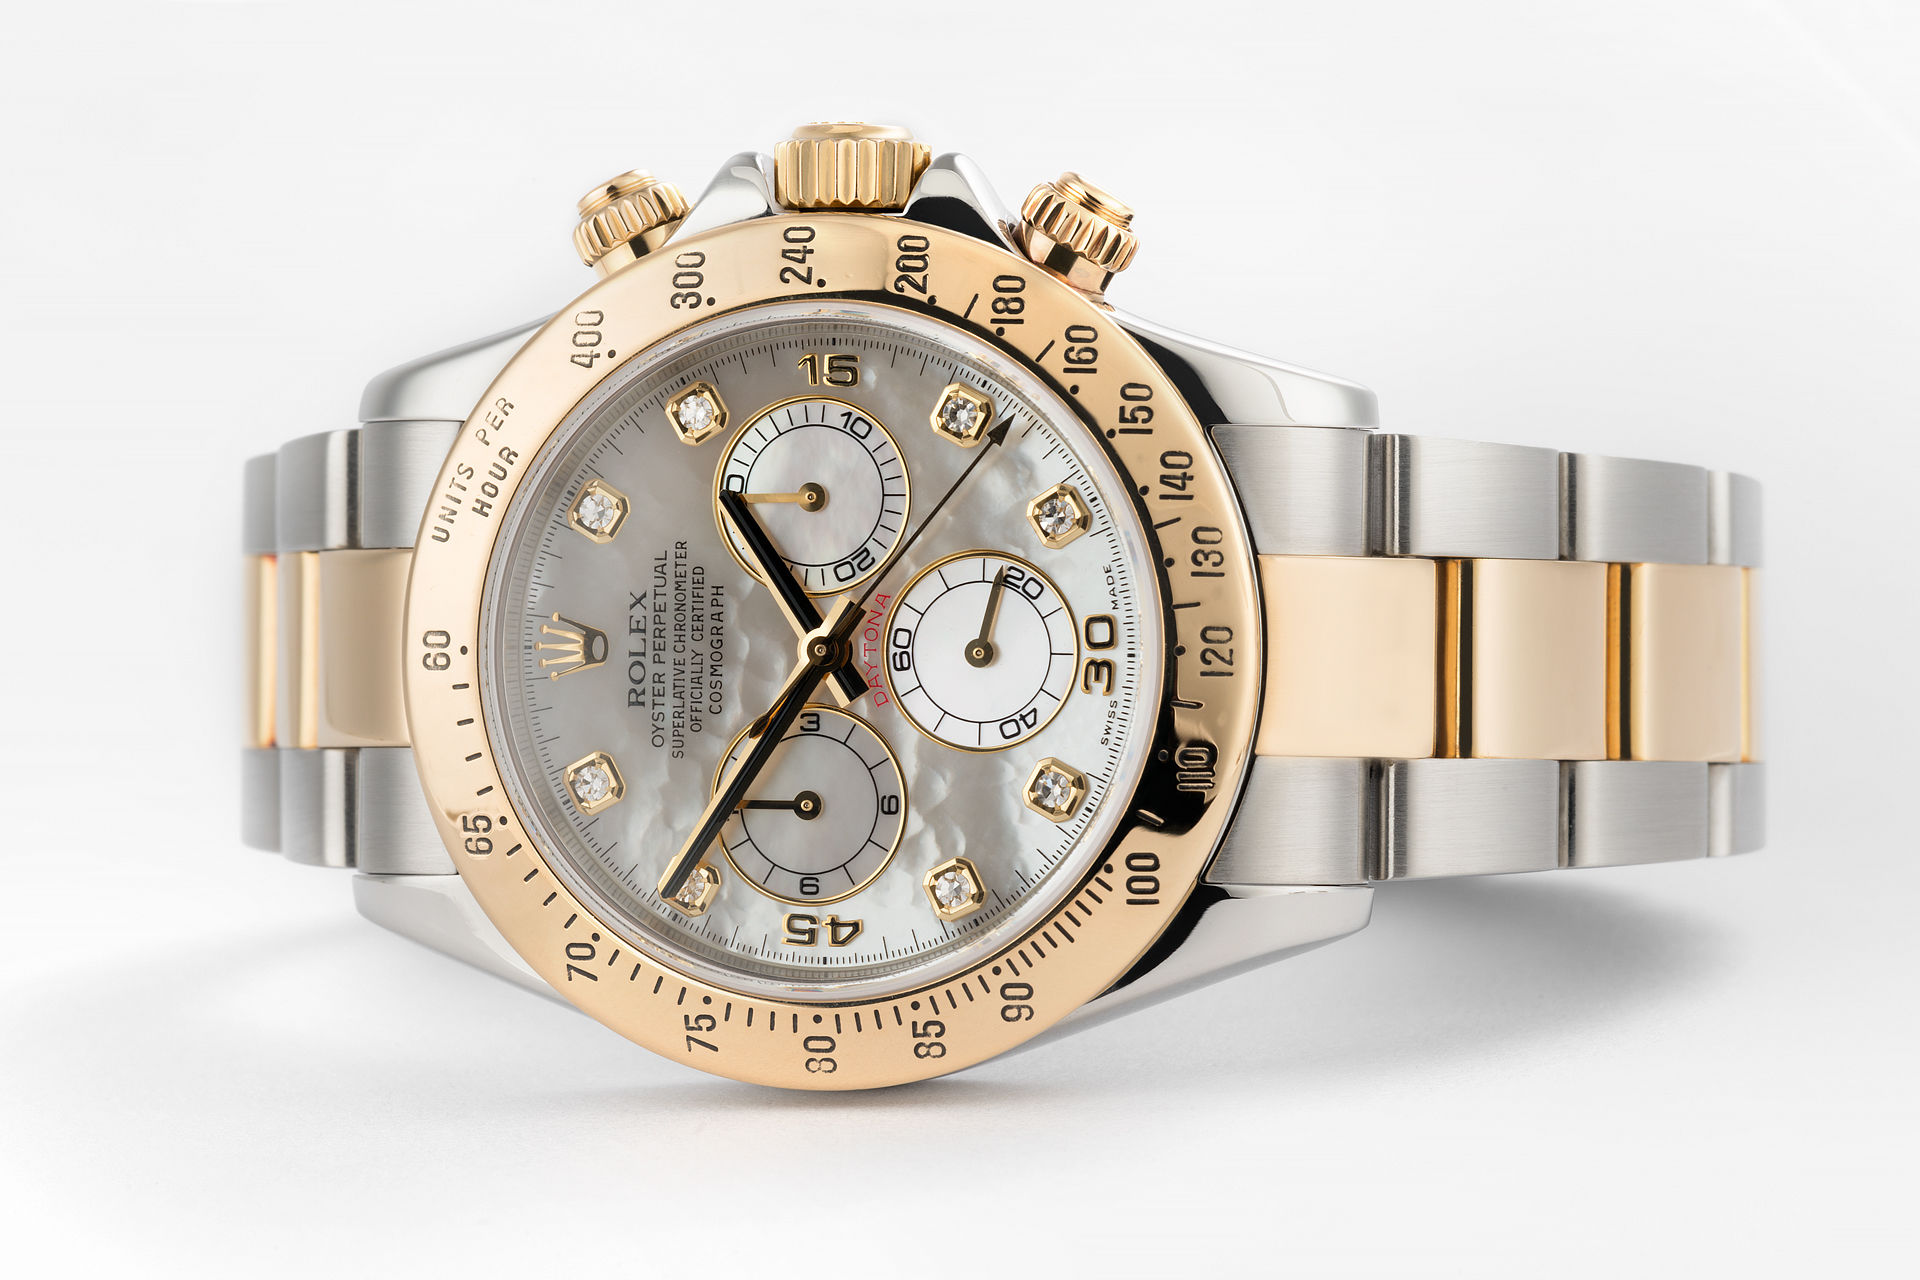 ref 116523 | Diamond Mother of Pearl  | Rolex Cosmograph Daytona